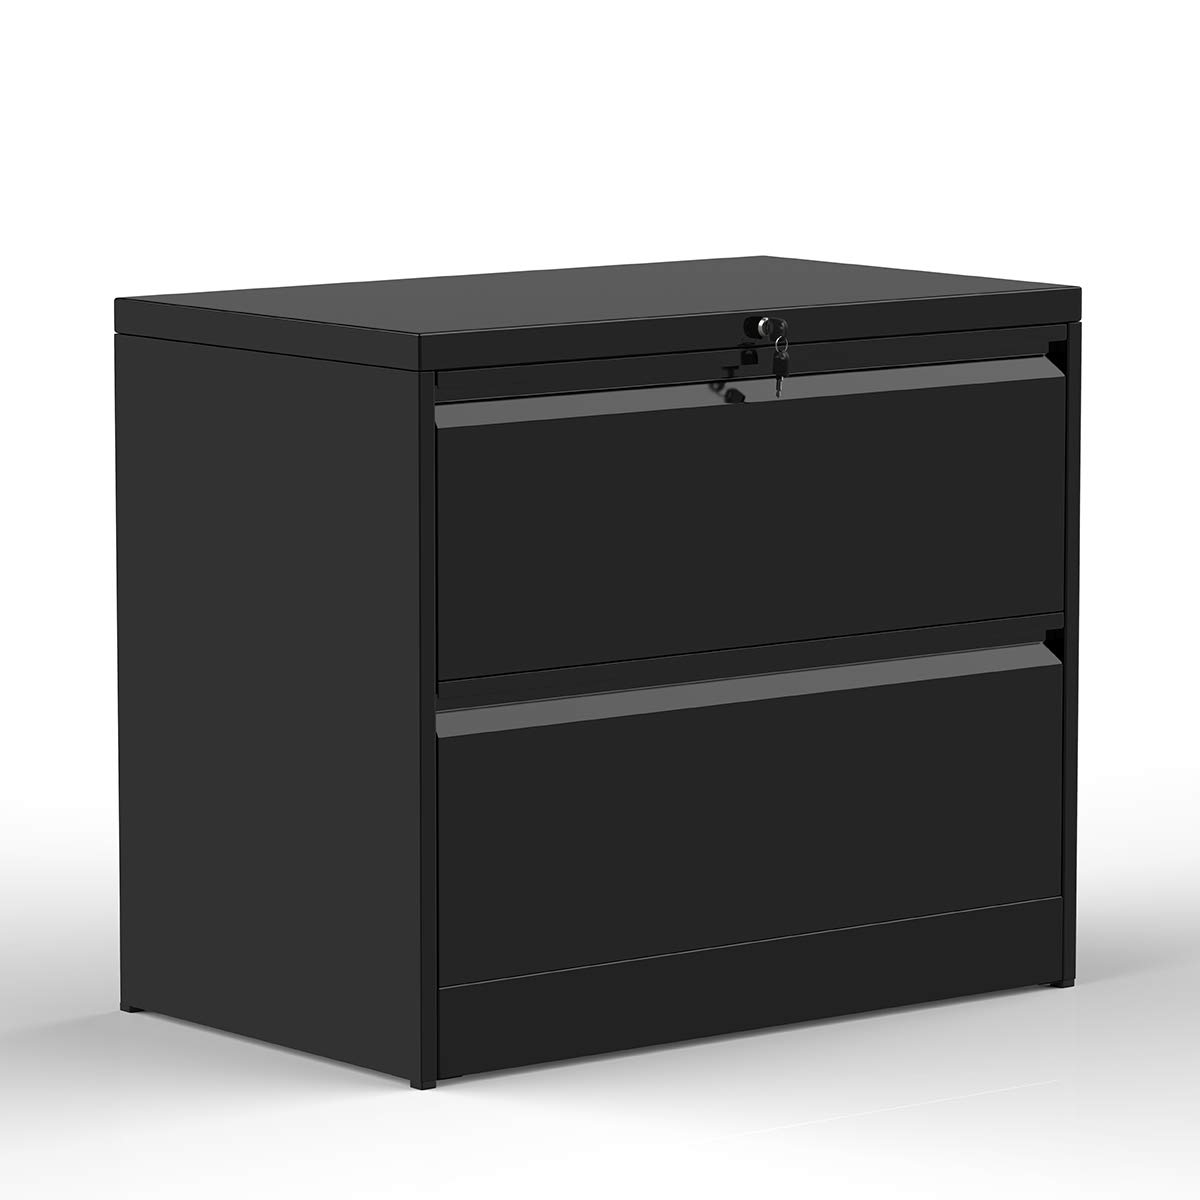 ModernLuxe Heavy-Duty Lateral File Cabinet (Black, 2-Drawers:35.4W17.7D28.4H)